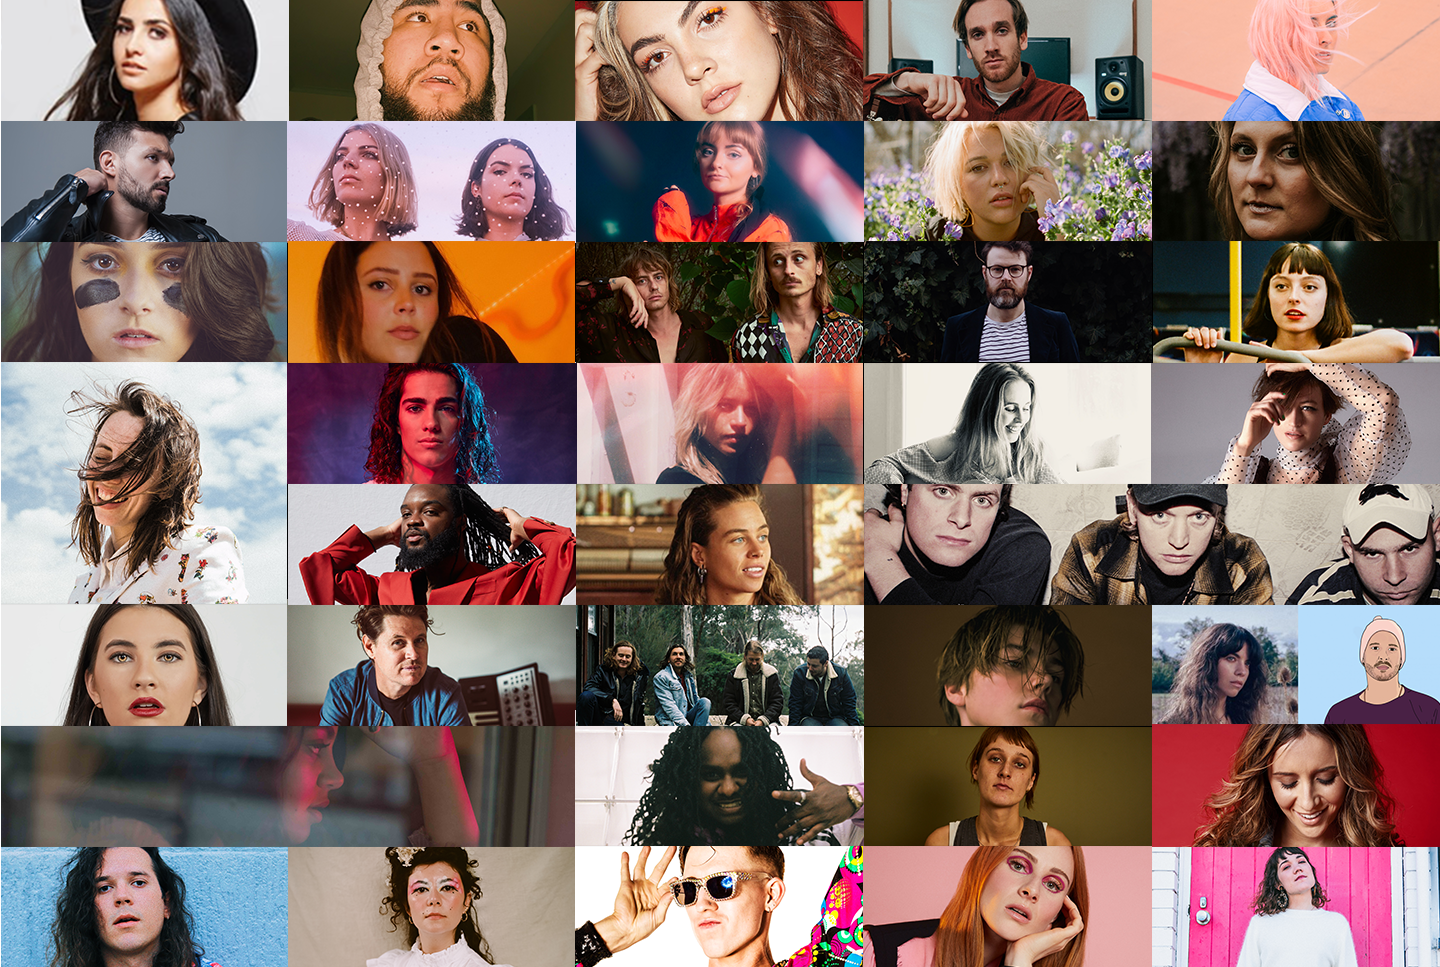 A composite image of the Vanda and Young top 40 shortlist including Thelma Plum, Stella Donnelly, Ruel, Gordi and DMA;s